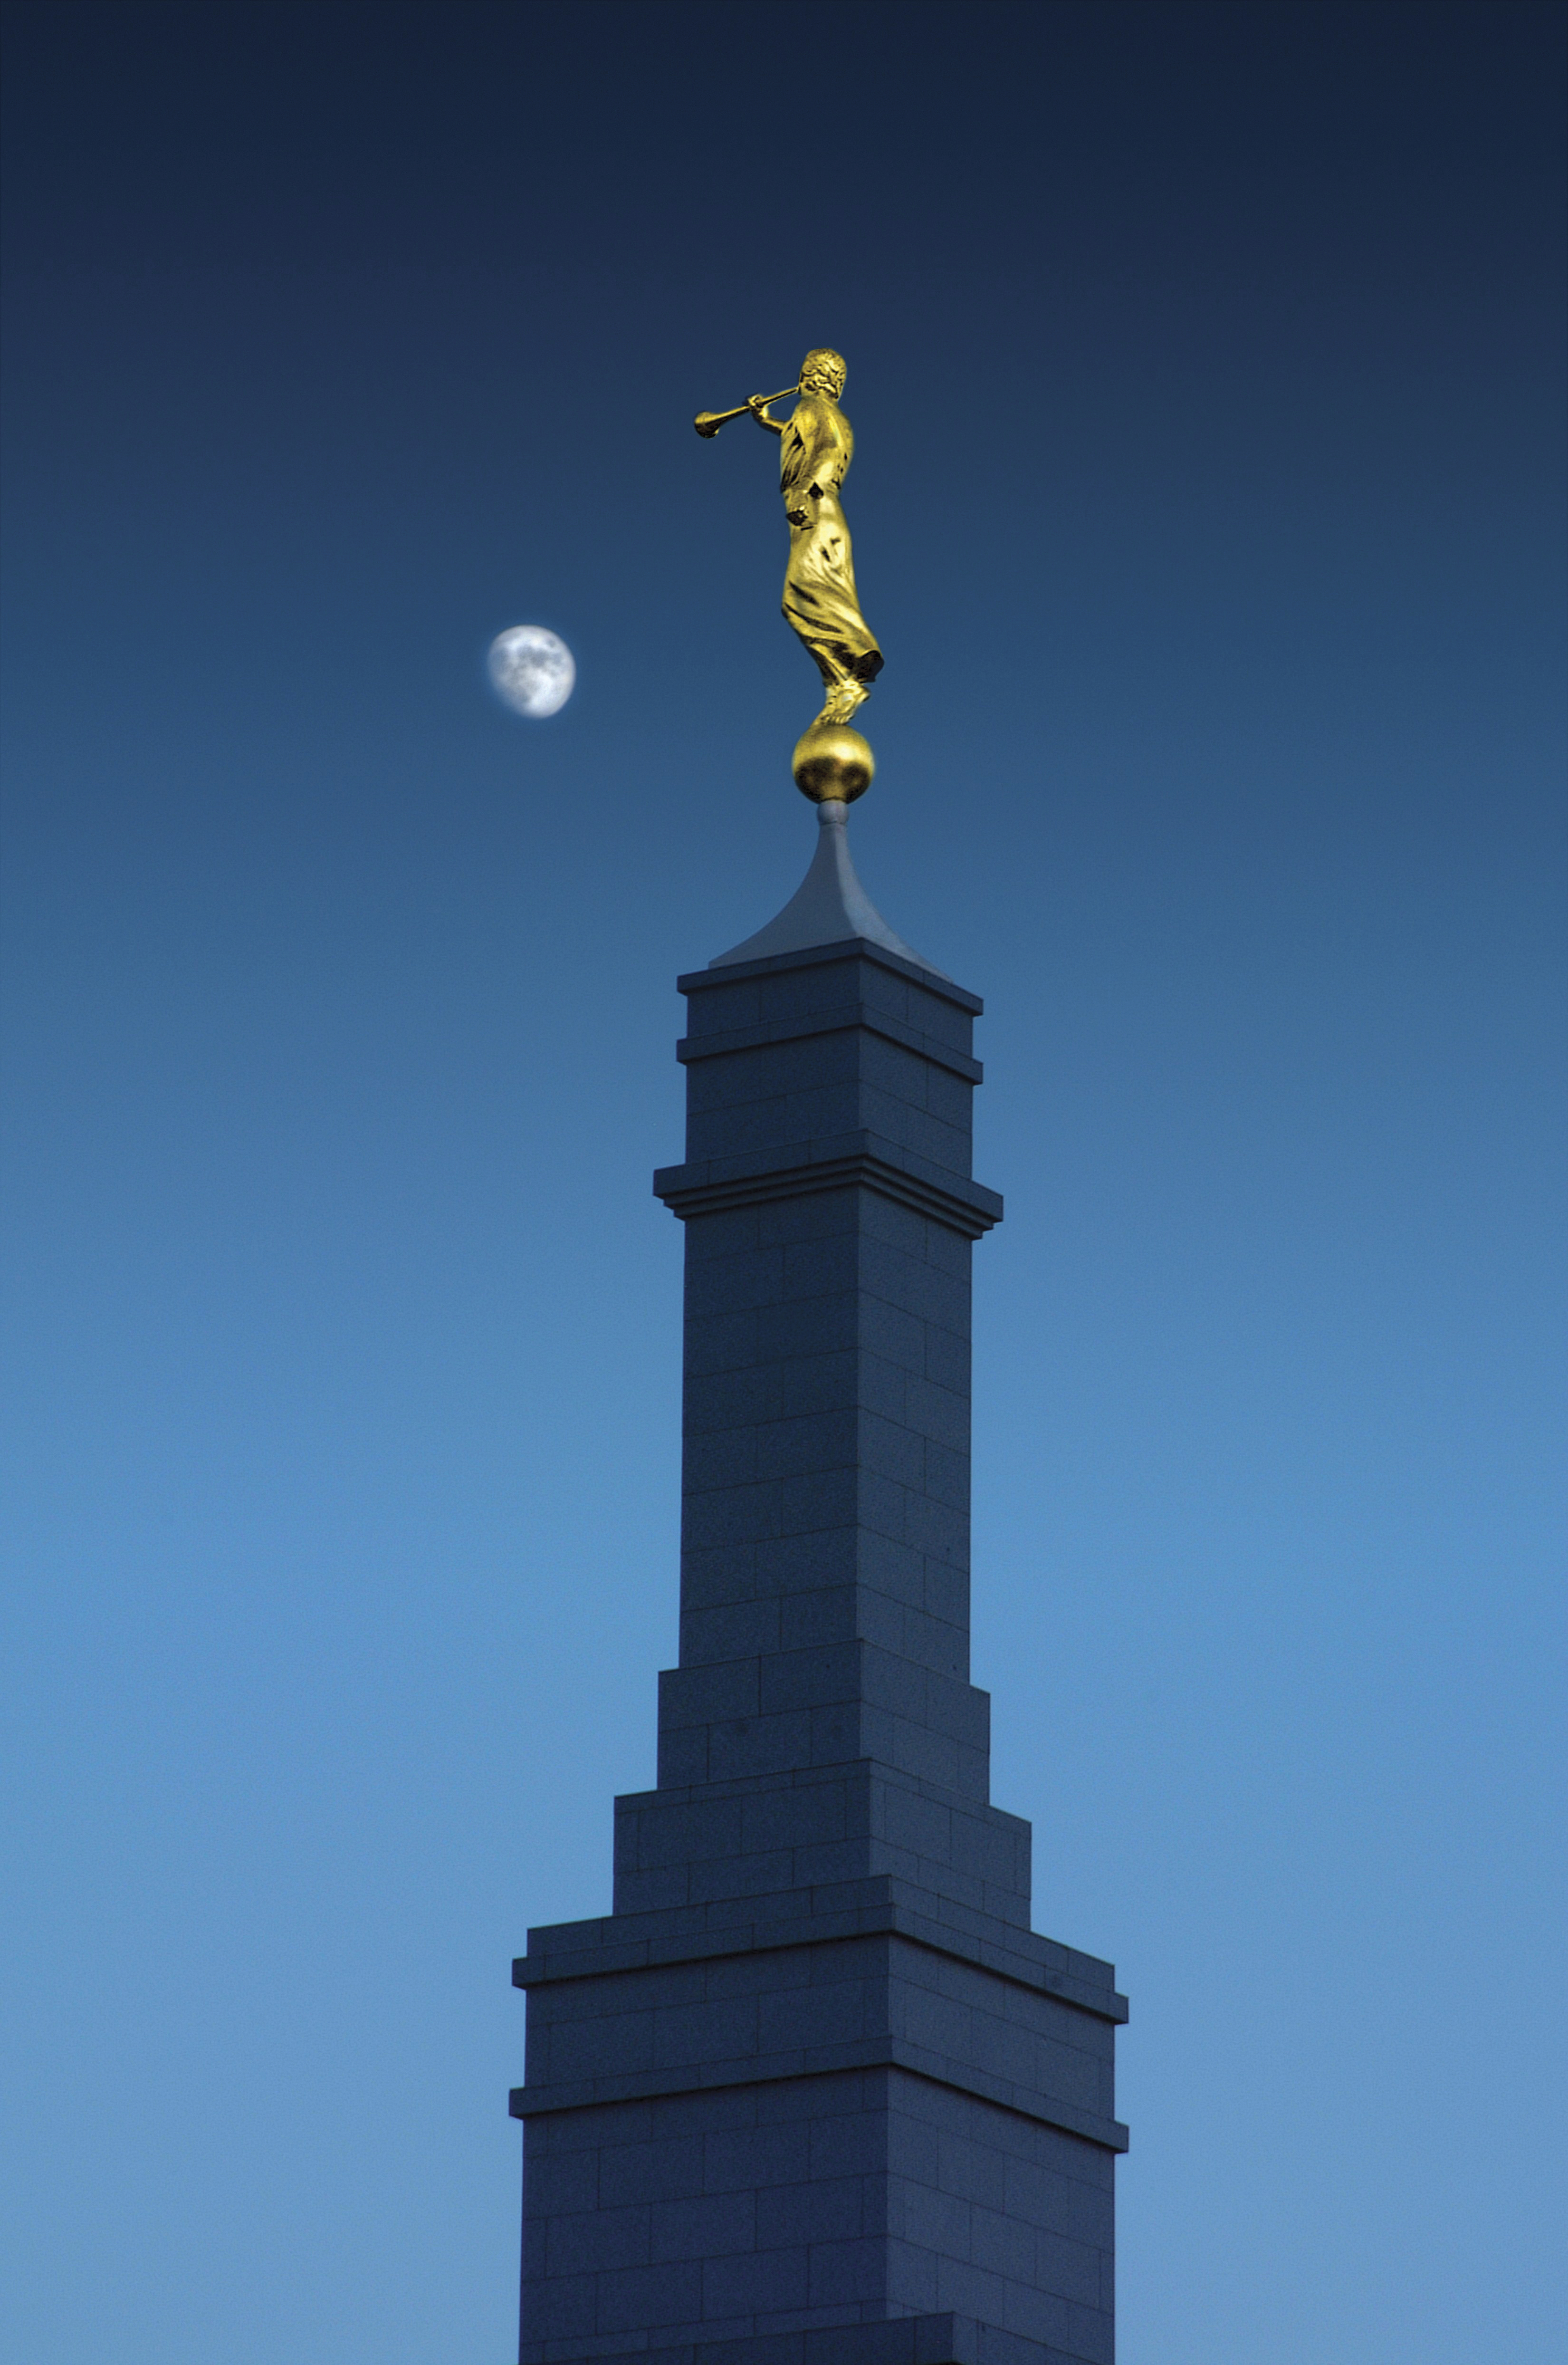 A view of the spire of the Fresno California Temple at night, with the angel Moroni on top.